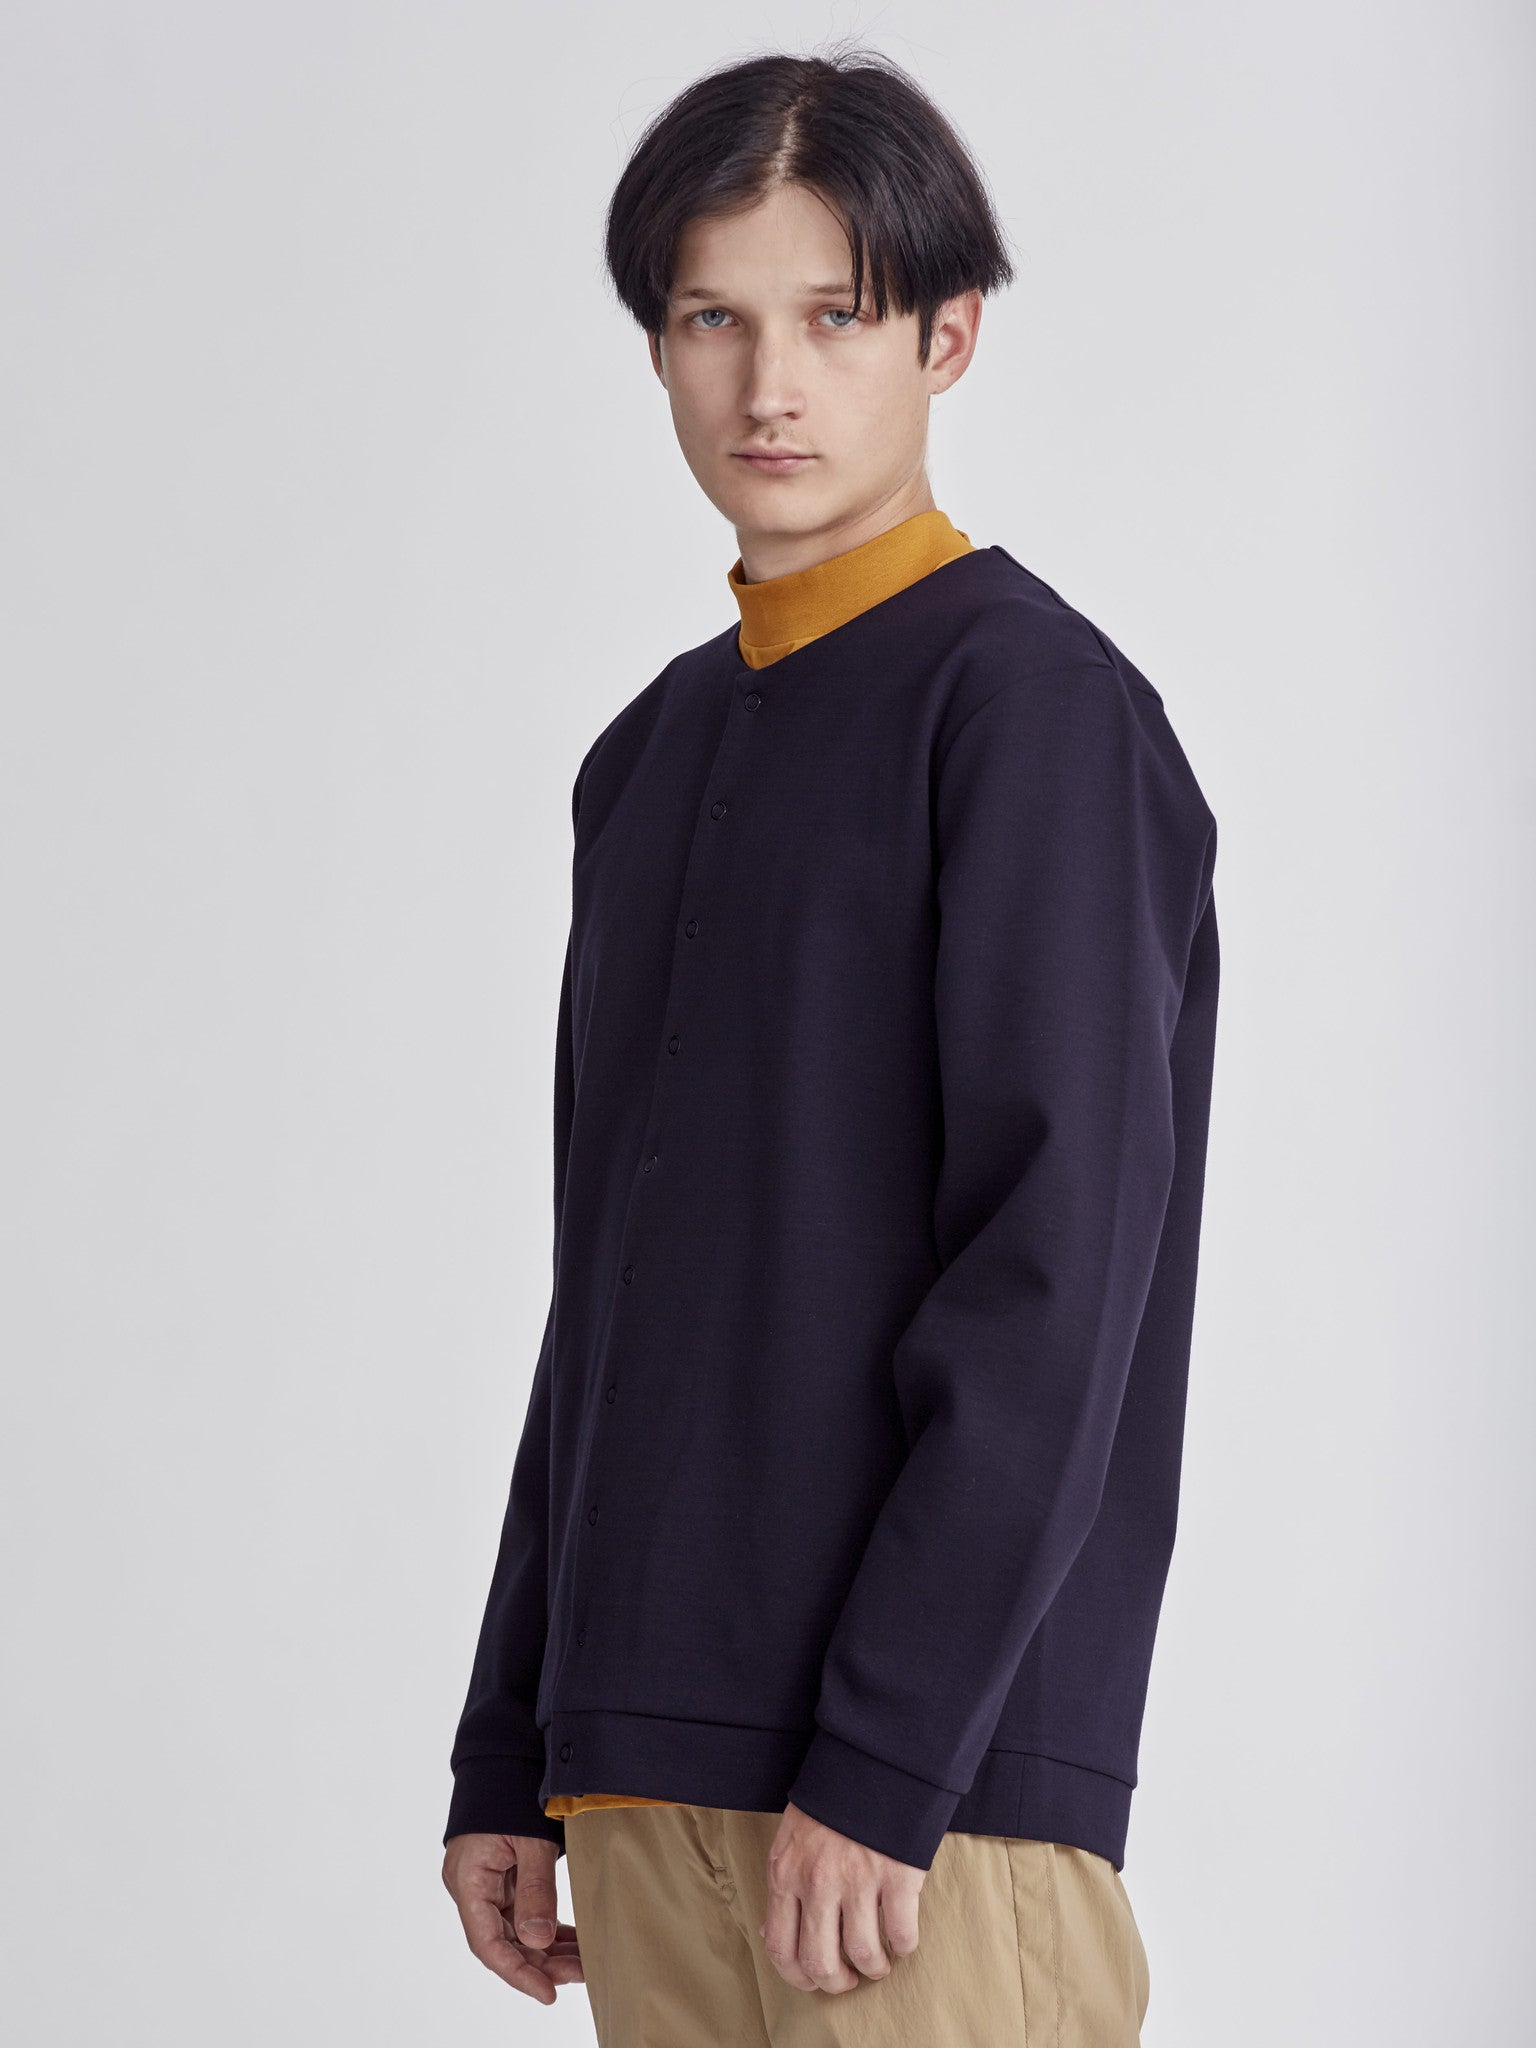 Navy Jacket made by Still by Hand at Sportivo Store